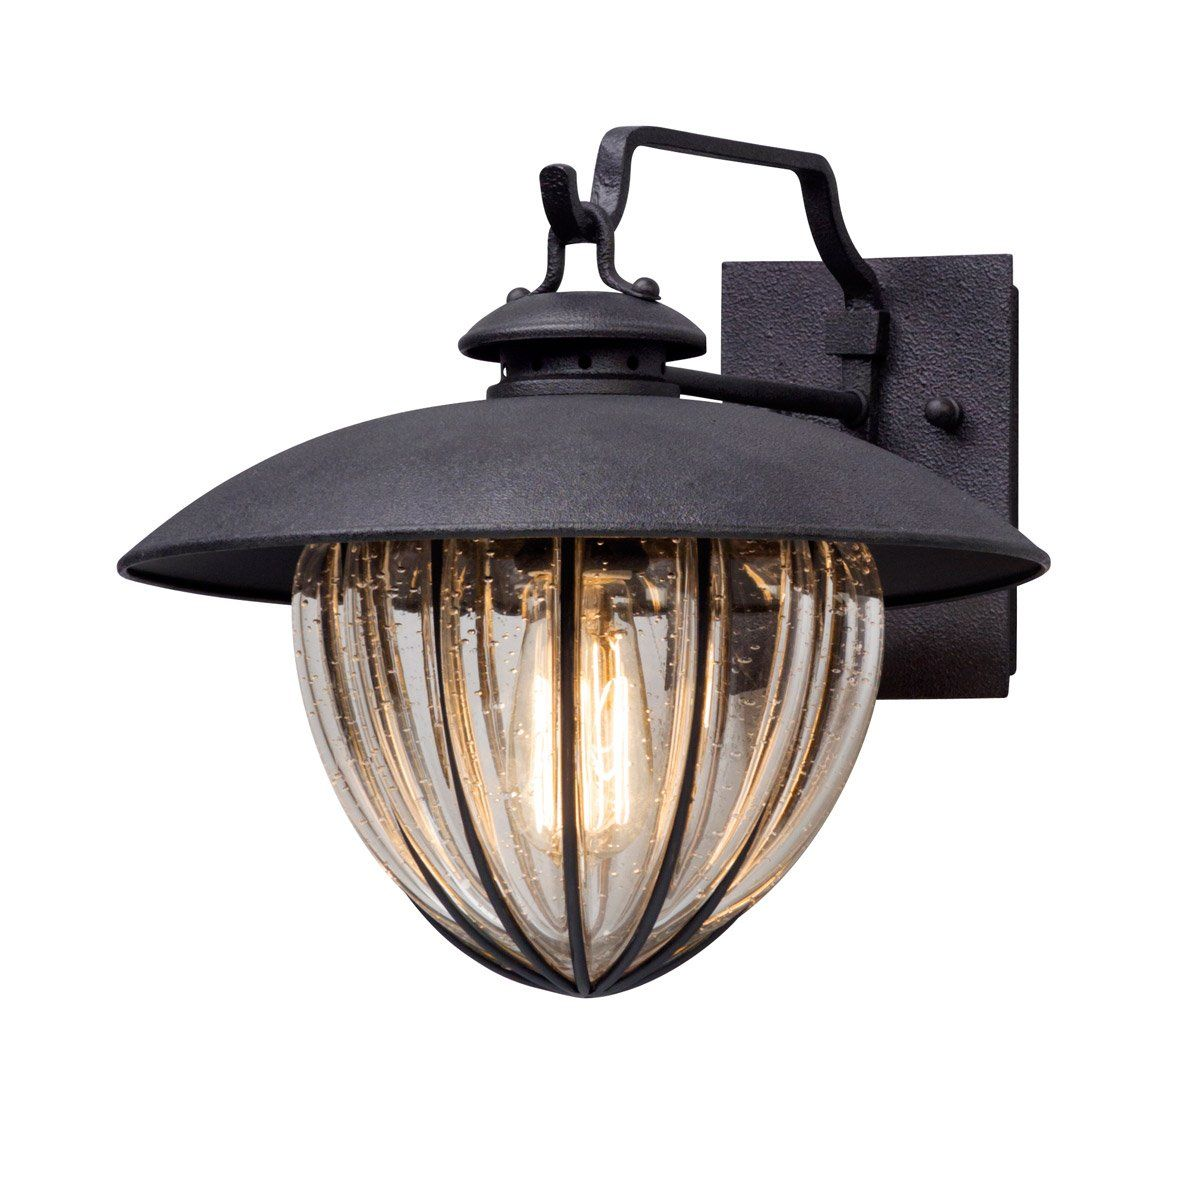 Troy-CSL Lighting B5041 Murphy 1 Light 11 inch Vintage Bronze Outdoor Wall Light  sc 1 st  Pinterest & Troy-CSL Lighting B5041 Murphy 1 Light 11 inch Vintage Bronze ...